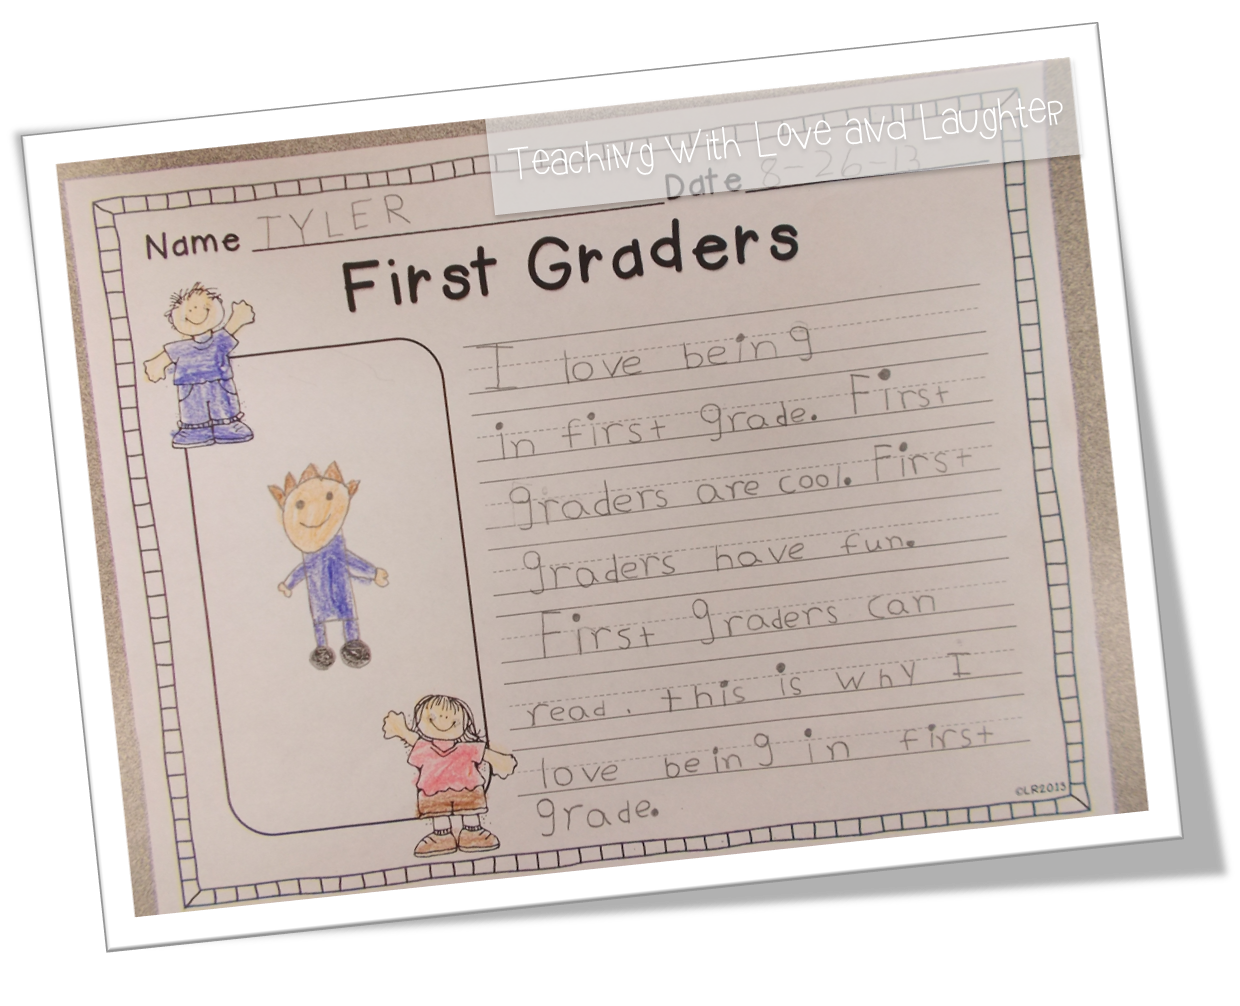 Your 1st grader's writing under Common Core Standards